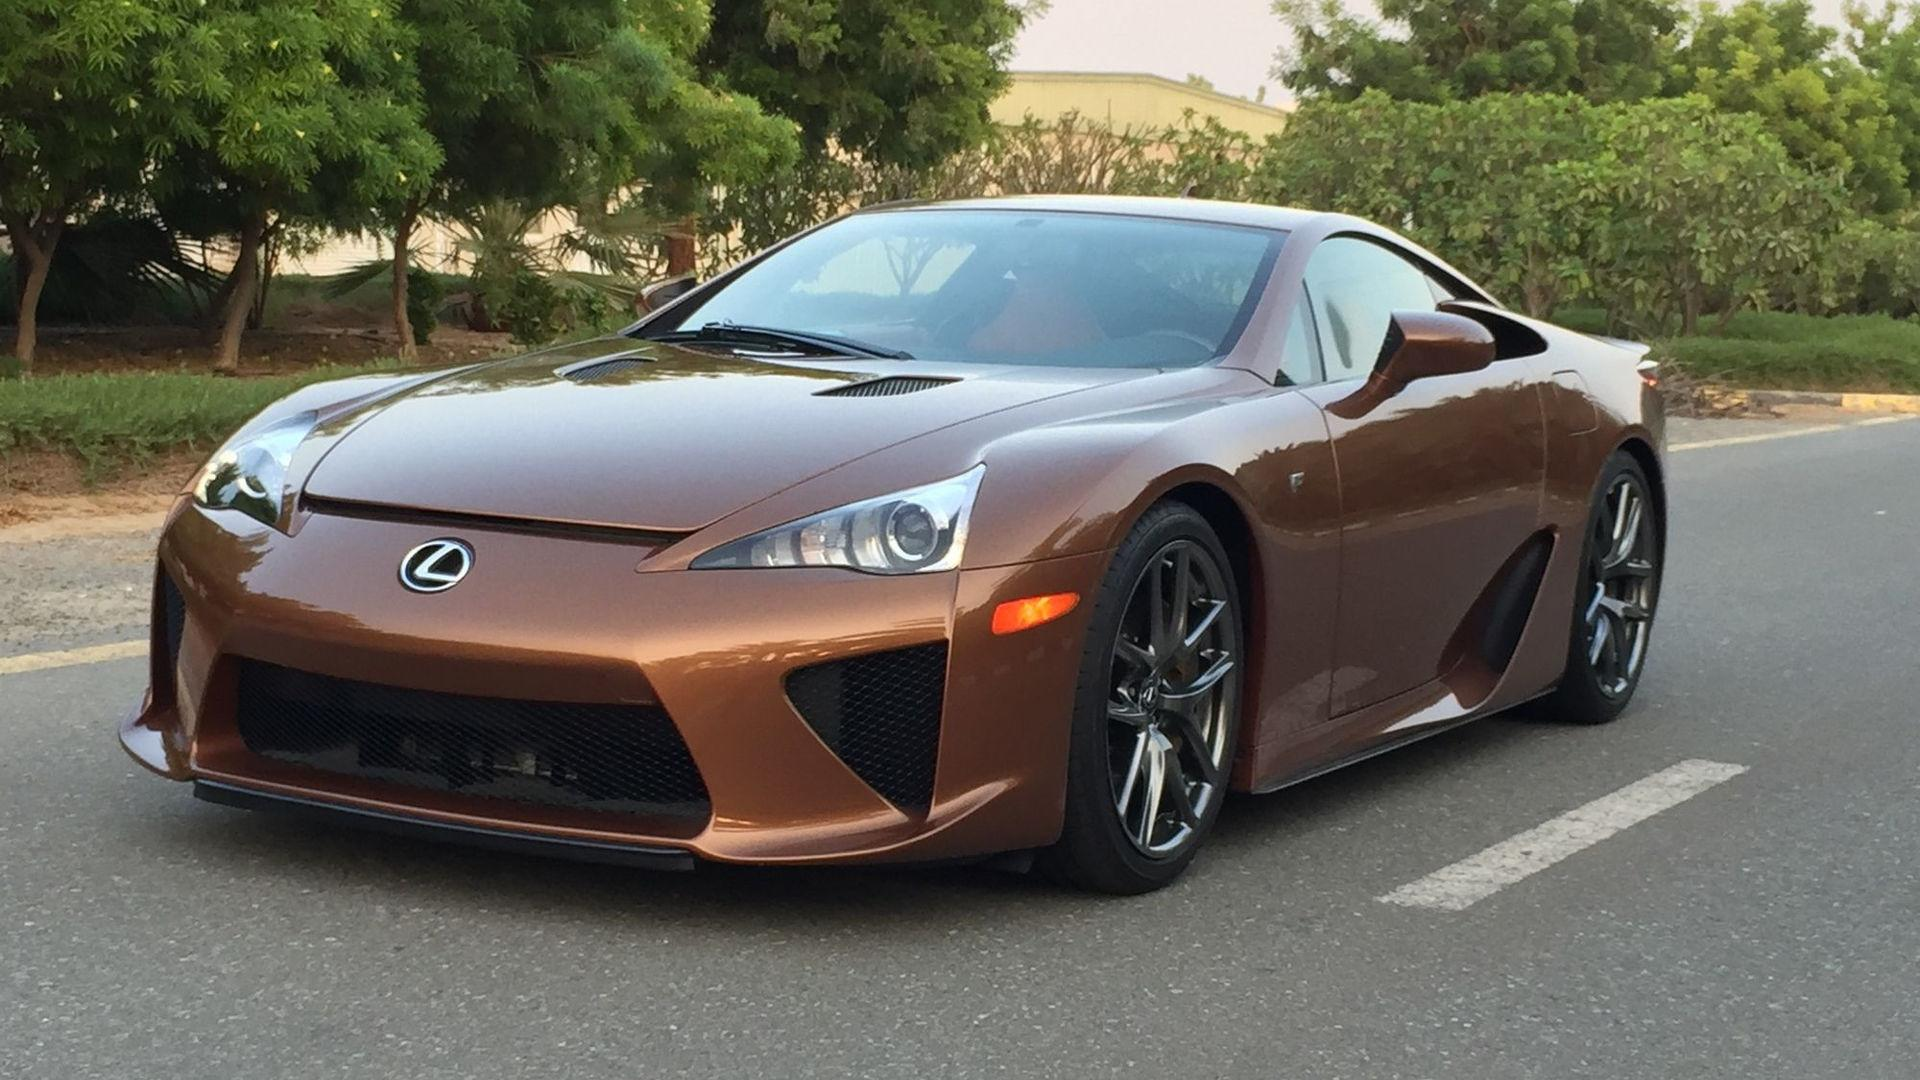 Home Interior Design Usa 645k Will Buy You The Only Pearl Brown Lexus Lfa In The World